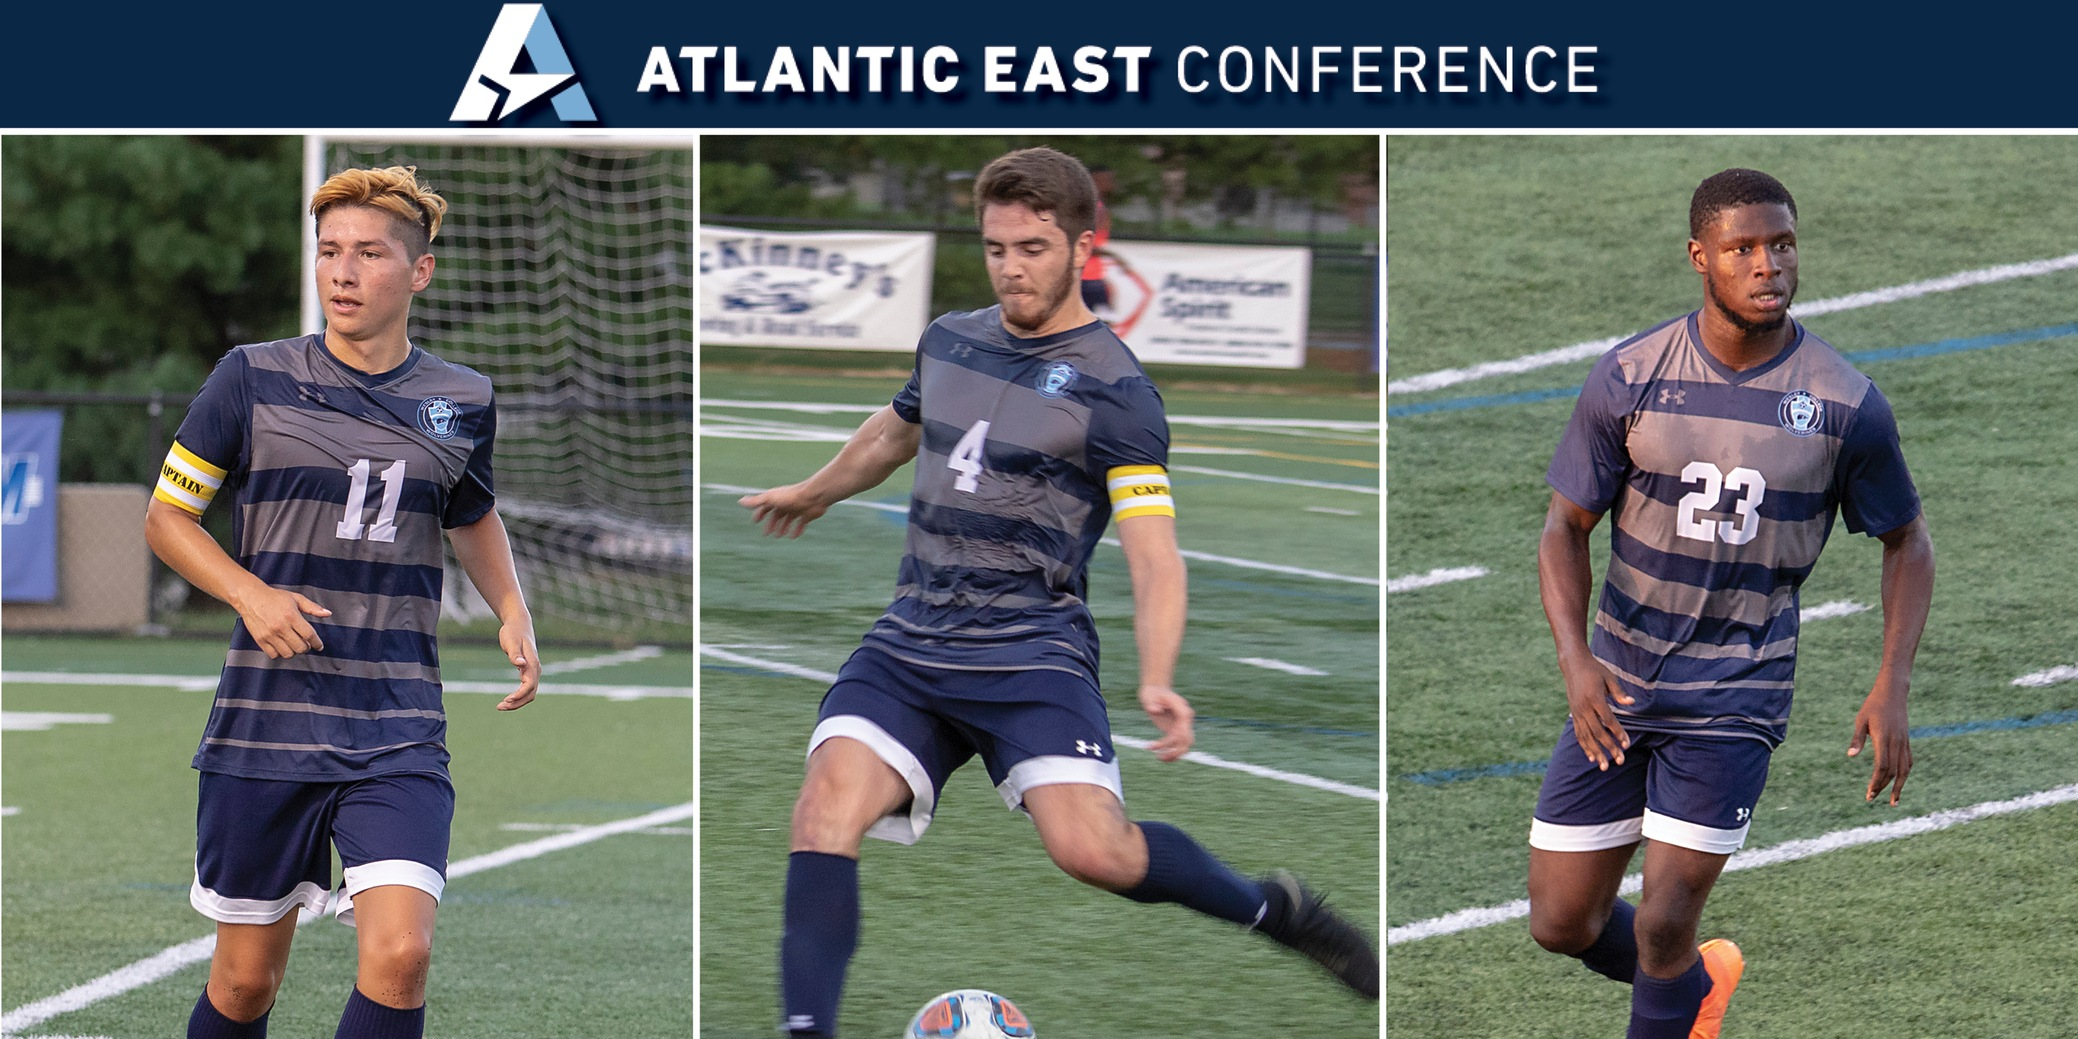 Atlantic East Conference Playoff Preview: Men's Soccer